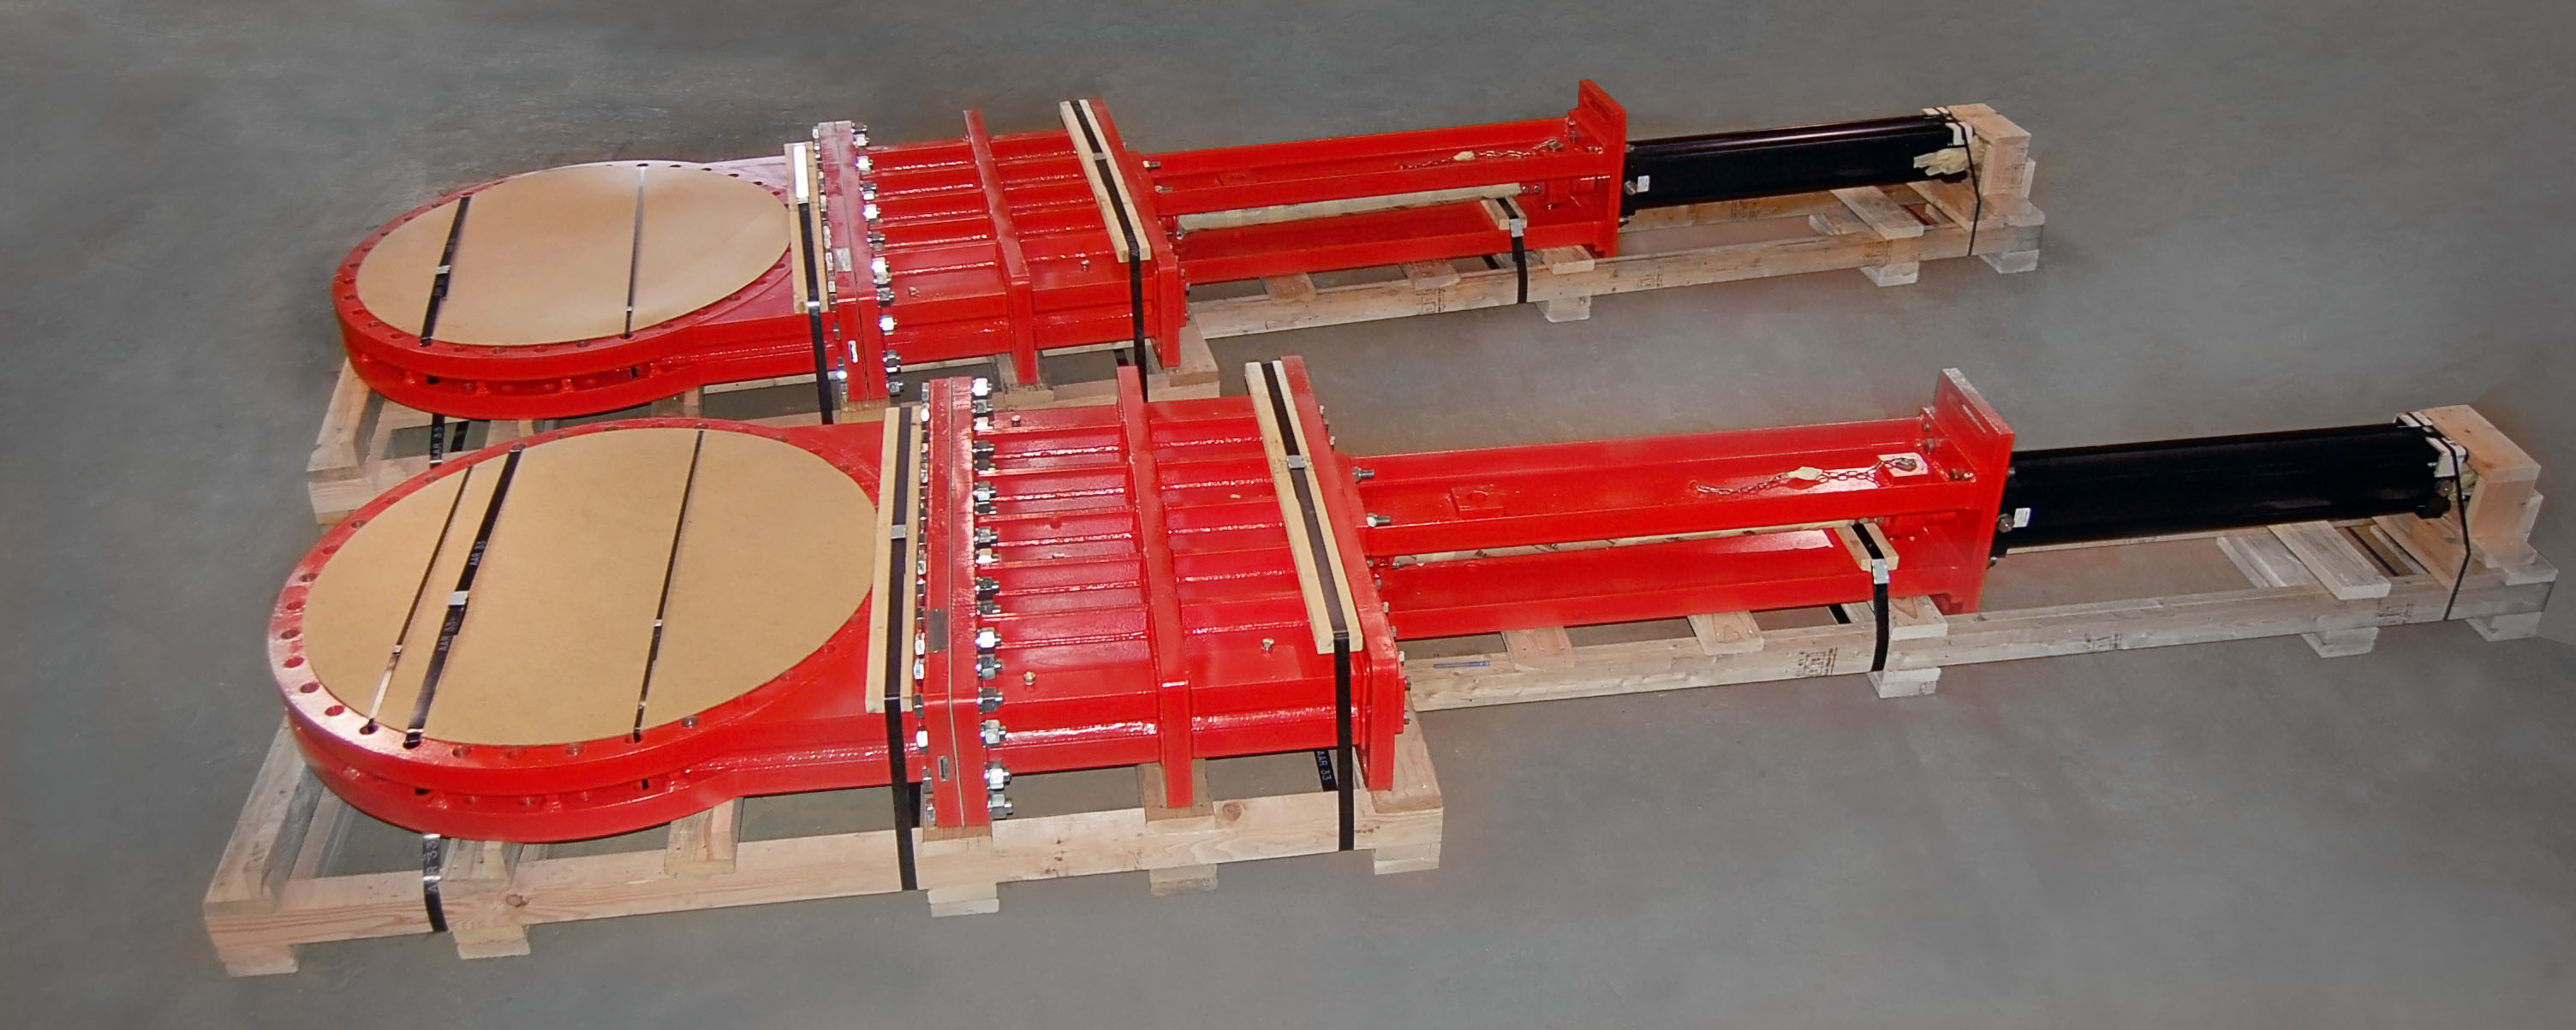 SlurryFlo Control Valves can be built from 3 to 60 inches in diameter.